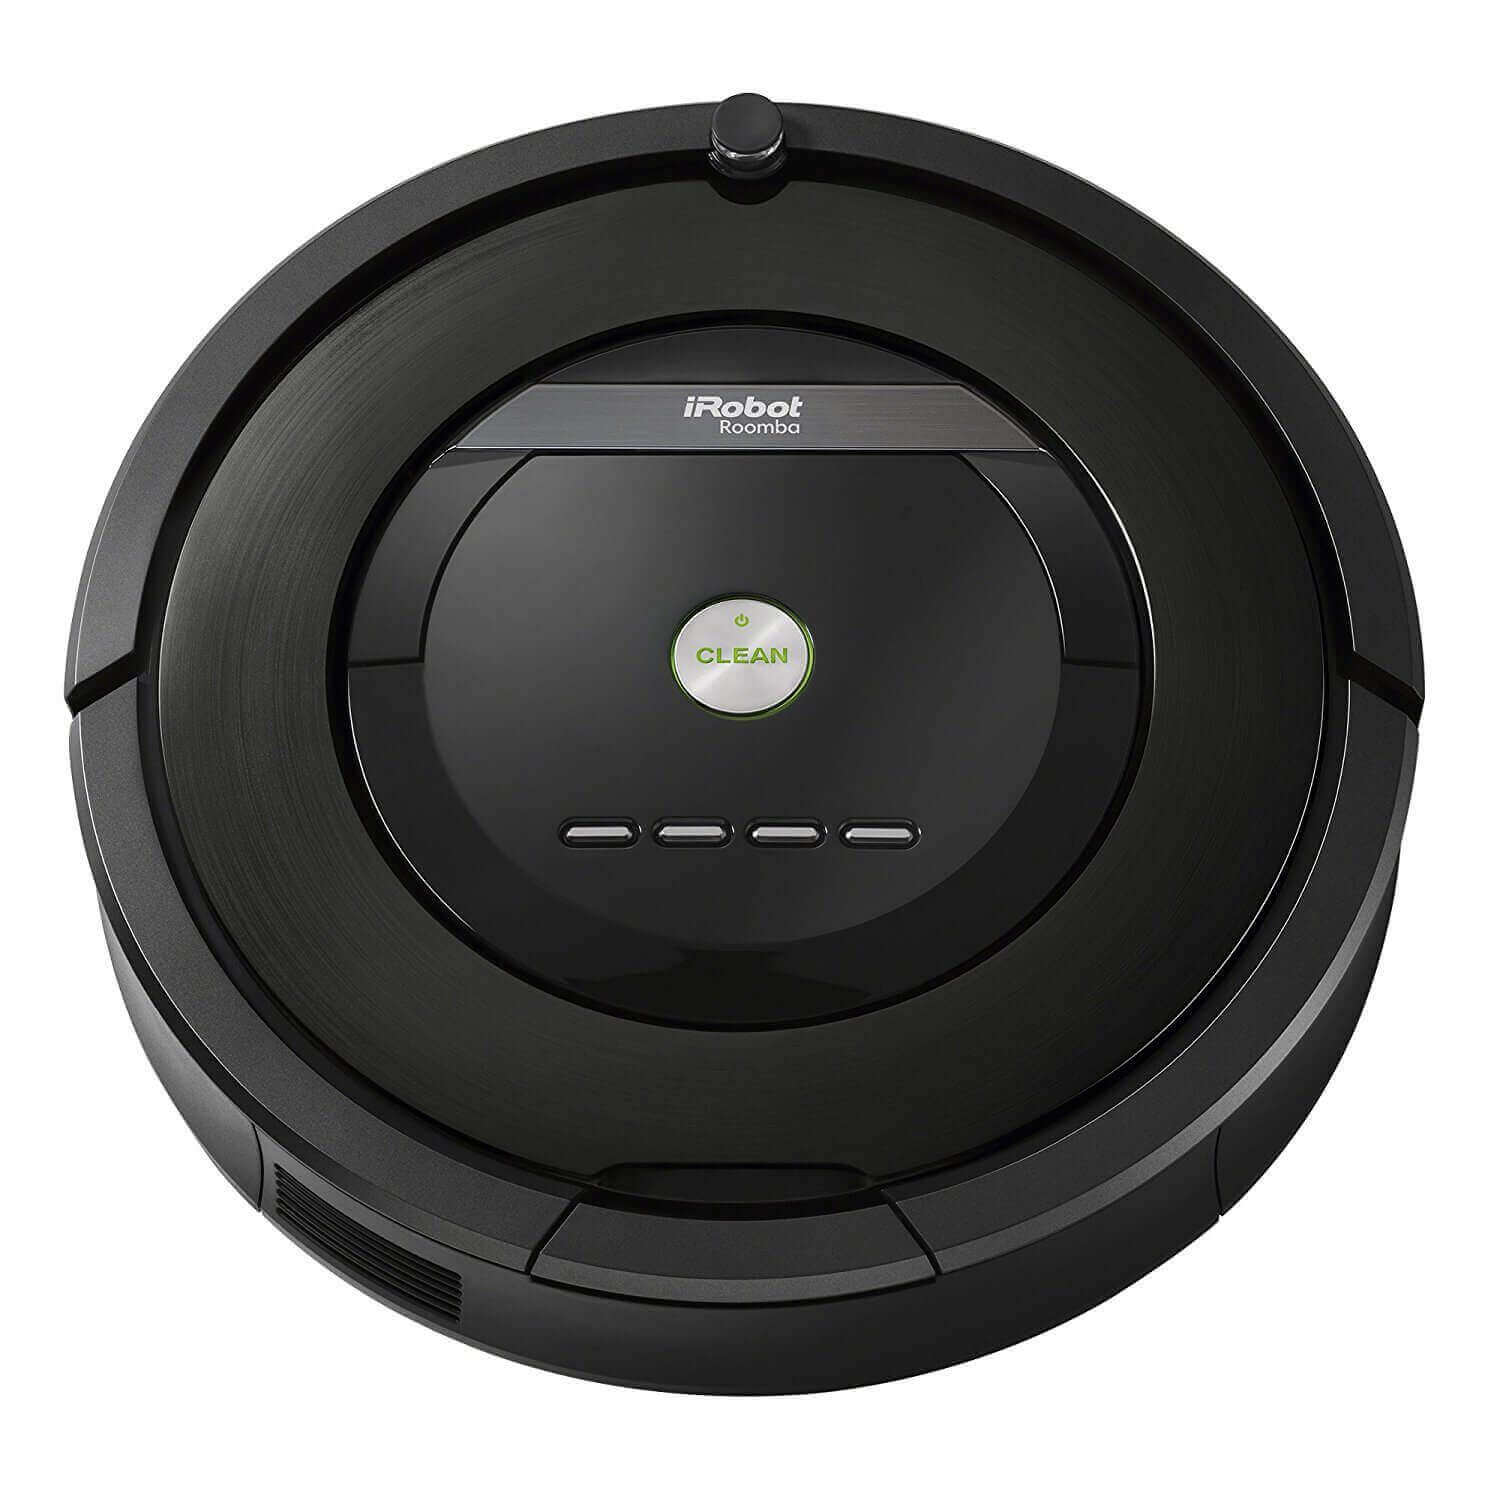 Roomba 880 vacuum cleaner Review